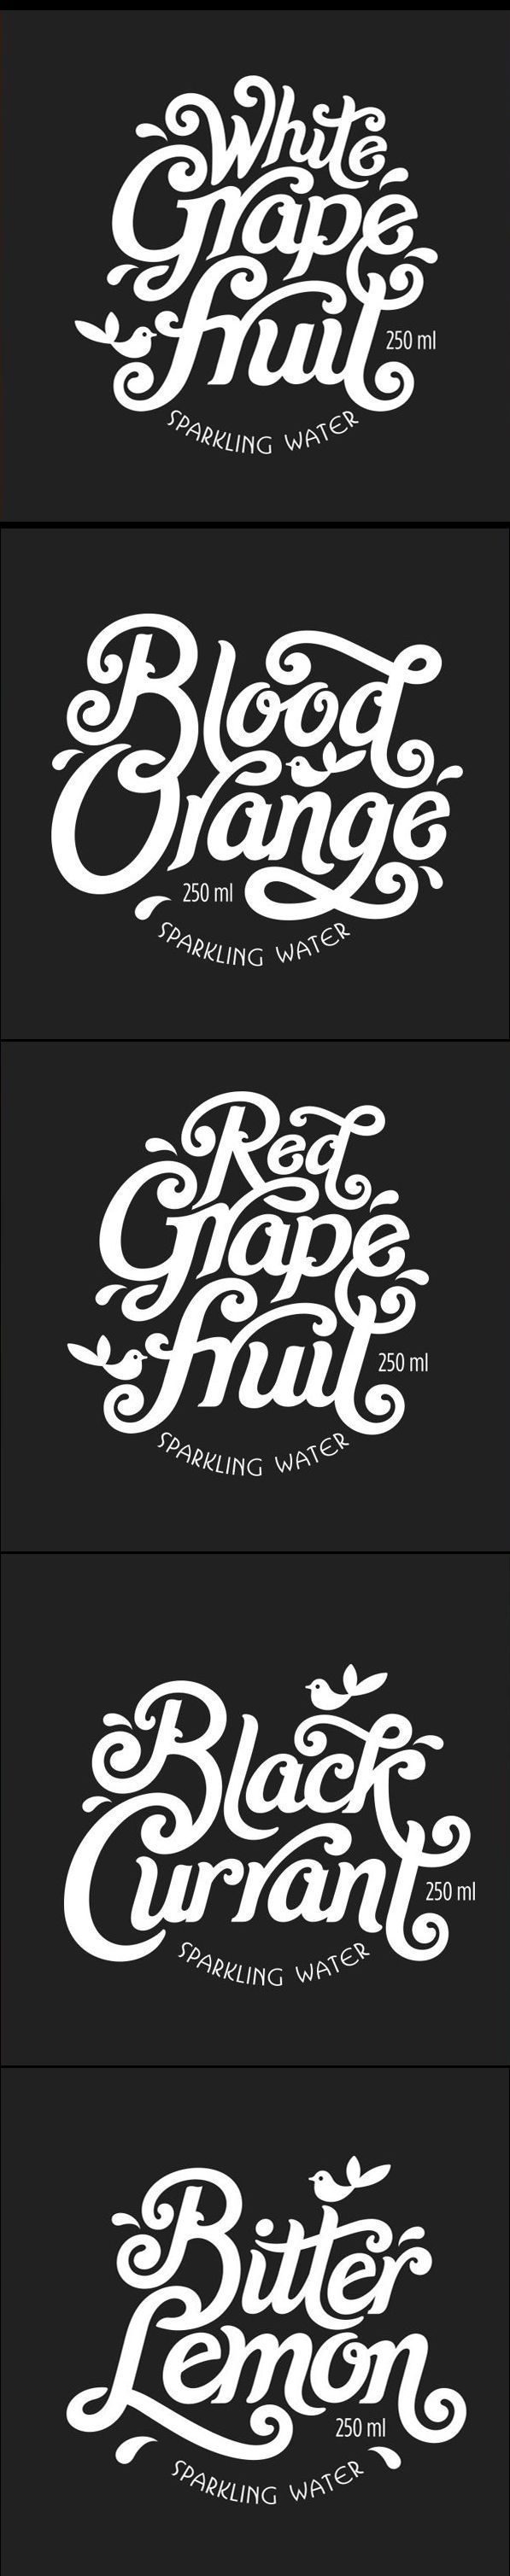 Labels for sparkling water logo graphic design inspiration